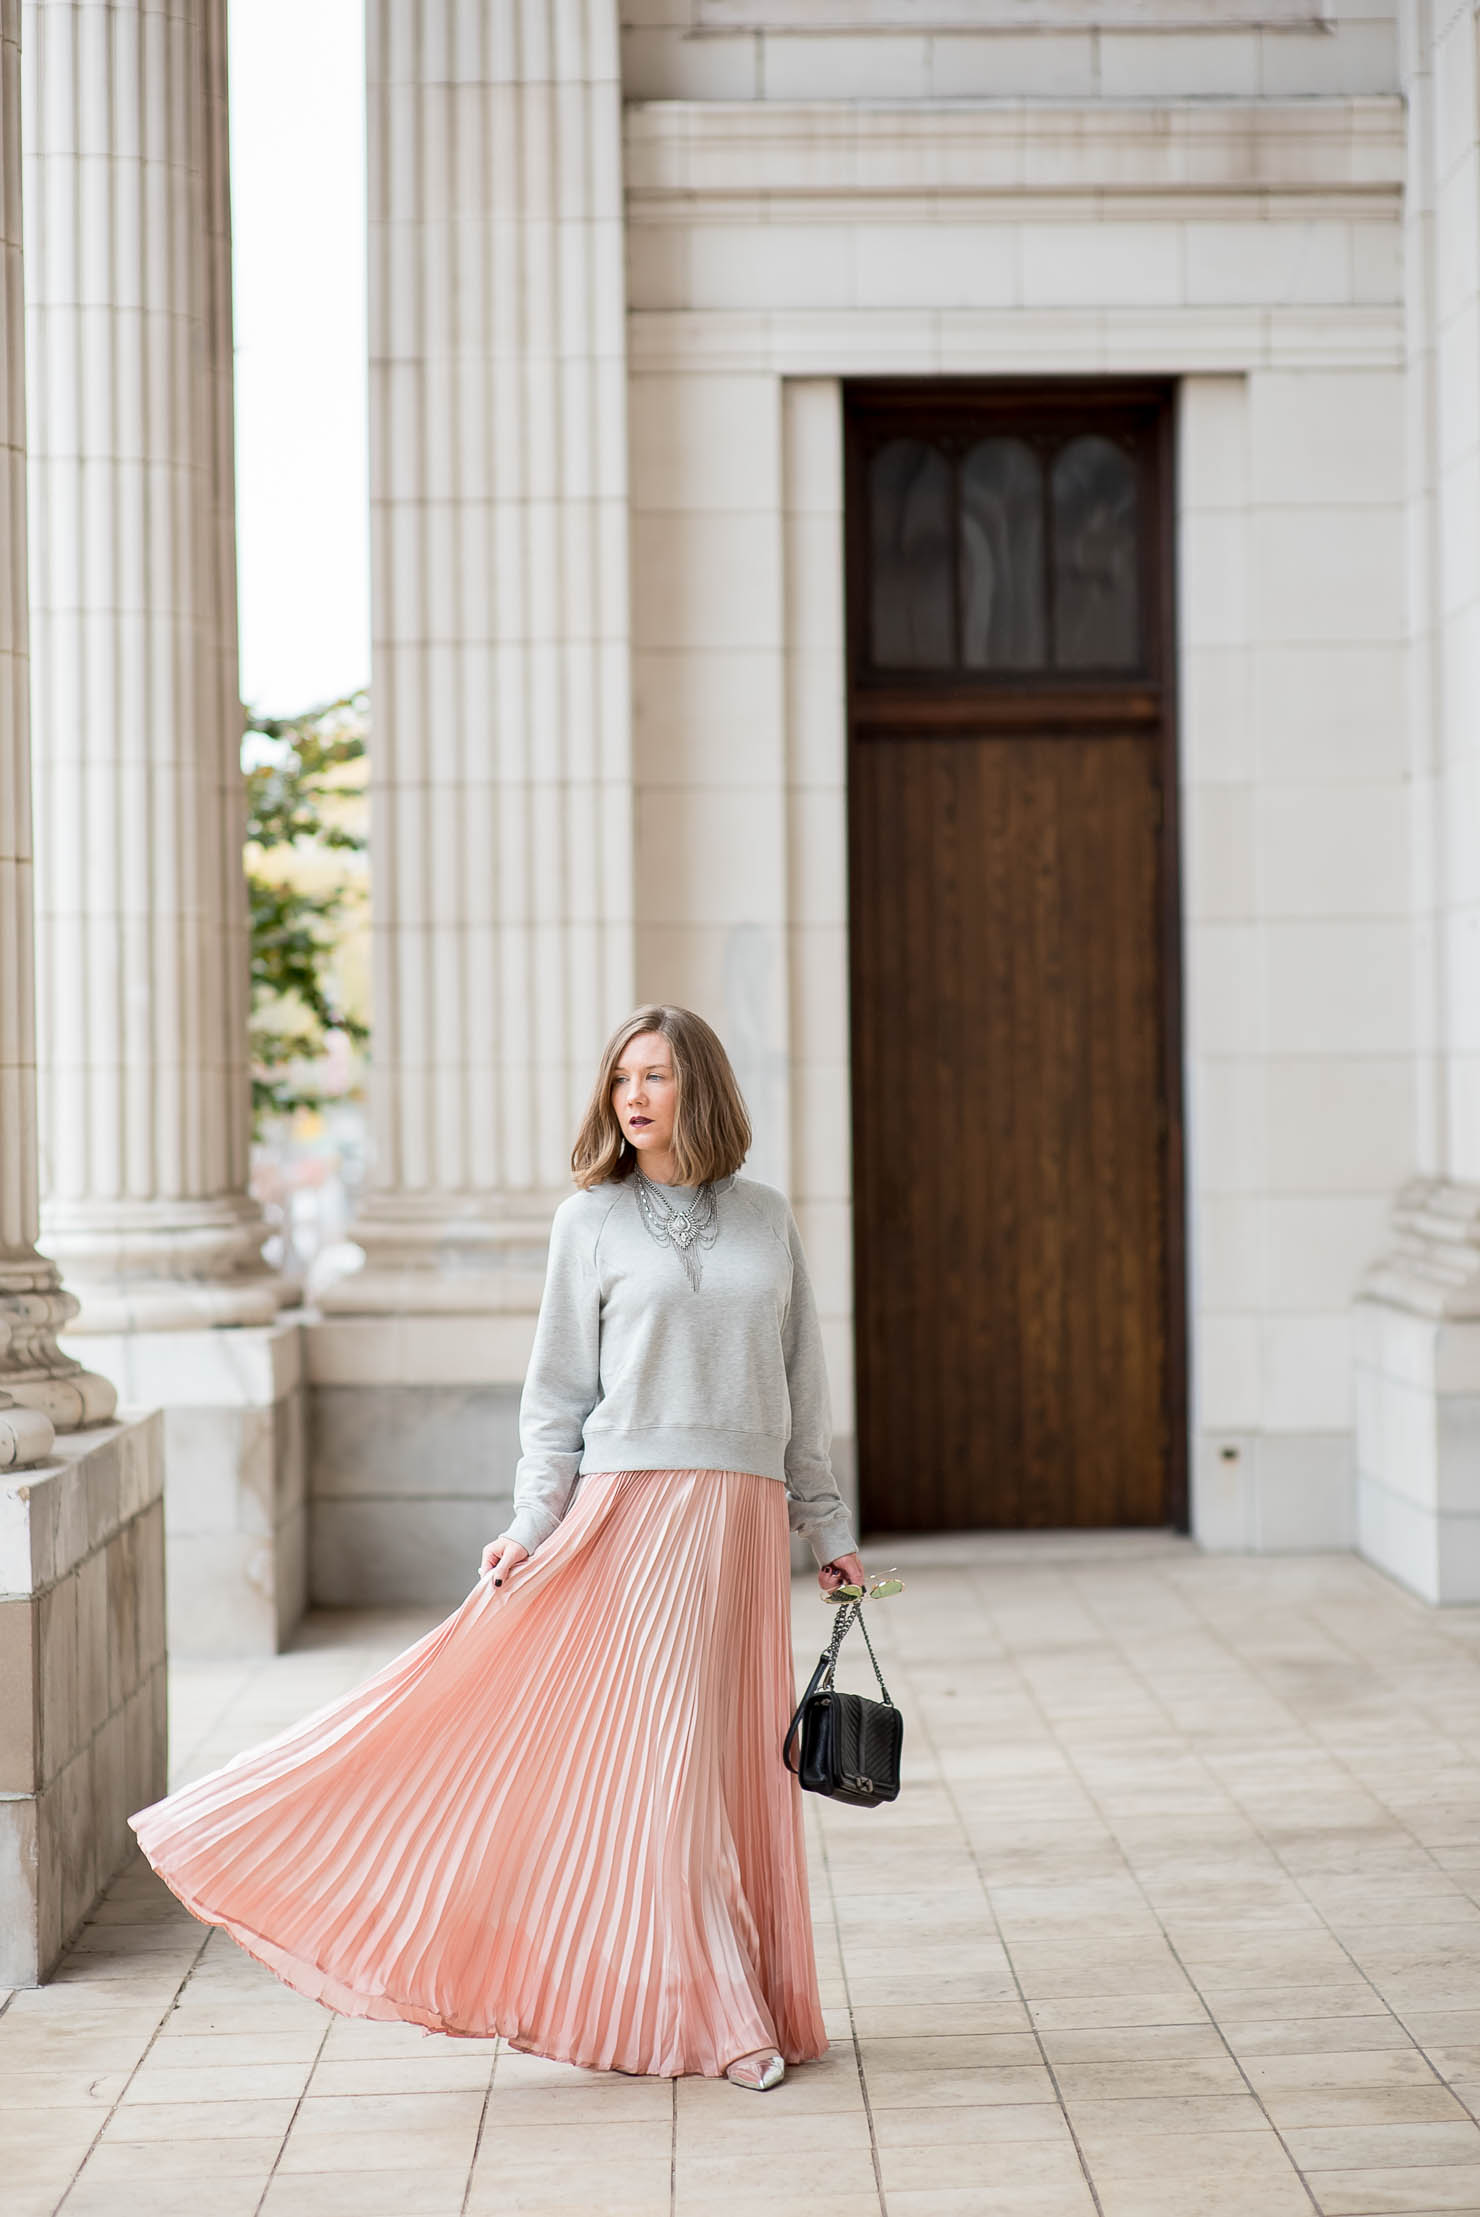 e8a6fac368 a-dramatic-pink-skirt-for-the-holidays-christmas-outfit-cozy-glam ...